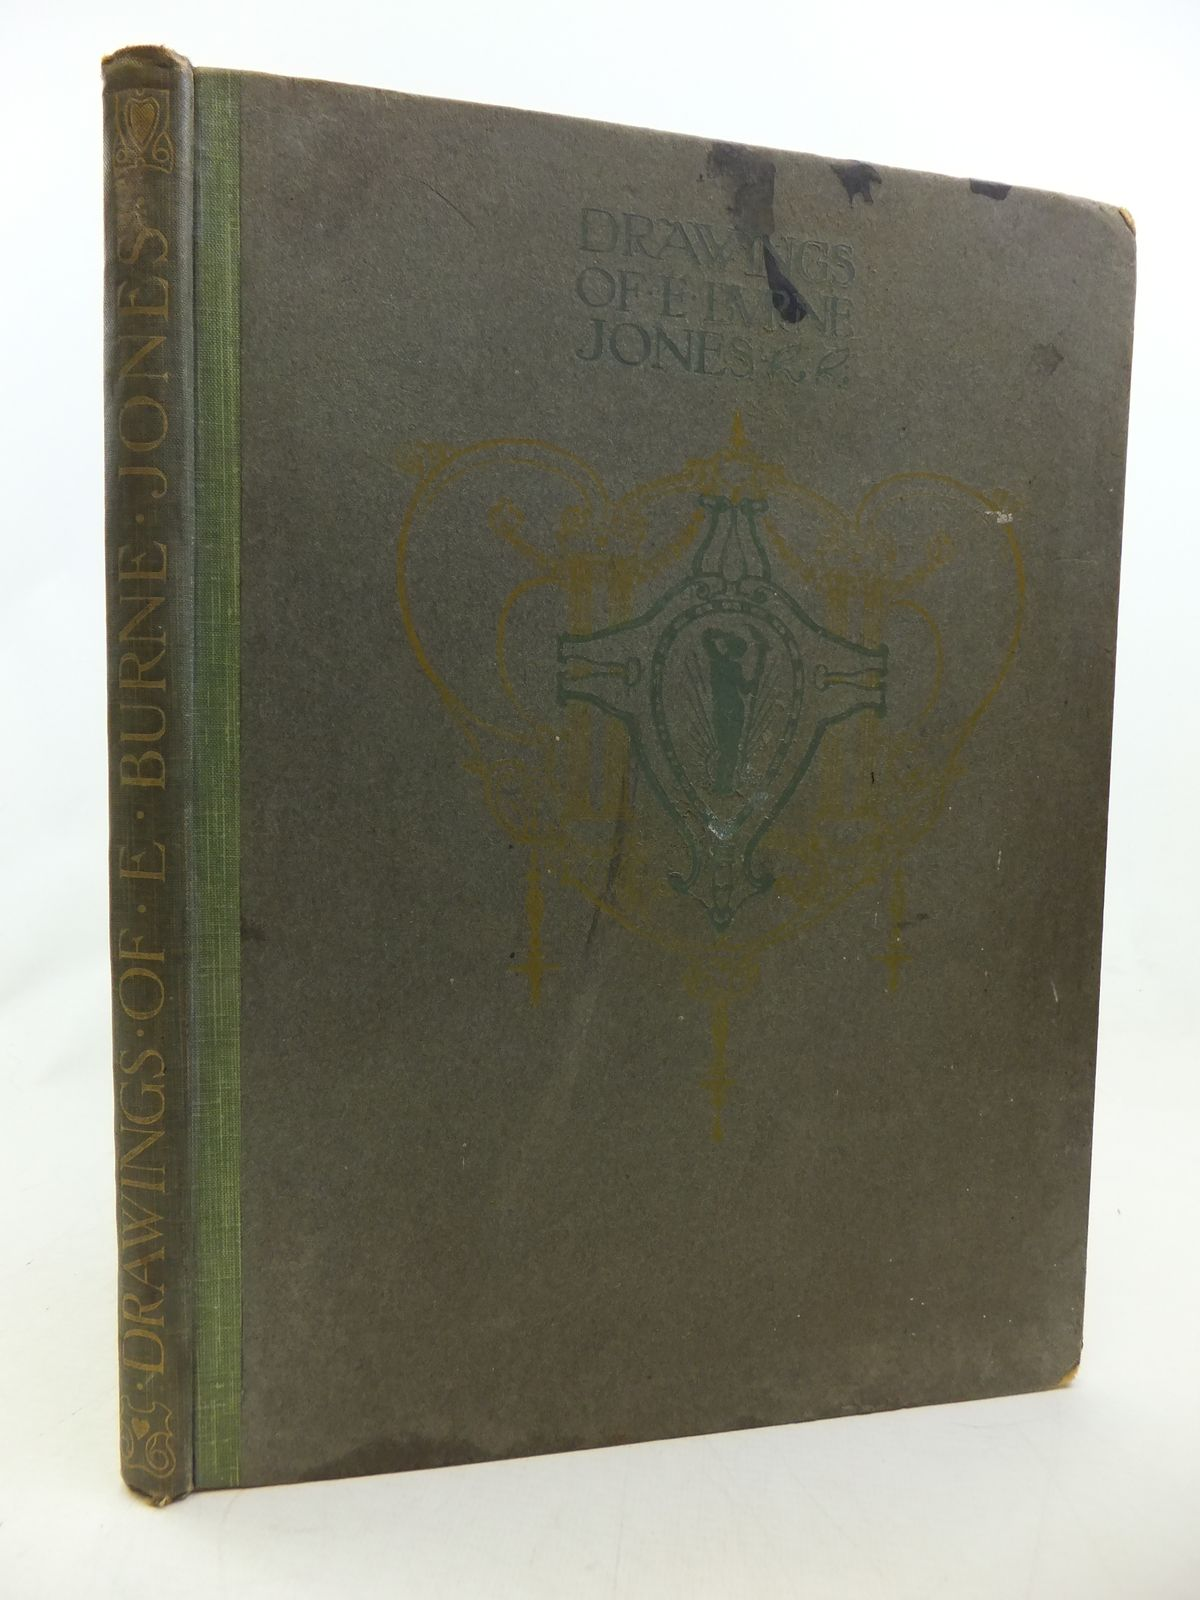 Photo of DRAWINGS OF SIR EDWARD BURNE-JONES written by Wood, T. Martin illustrated by Burne-Jones, Edward published by George Newnes Limited (STOCK CODE: 2114055)  for sale by Stella & Rose's Books